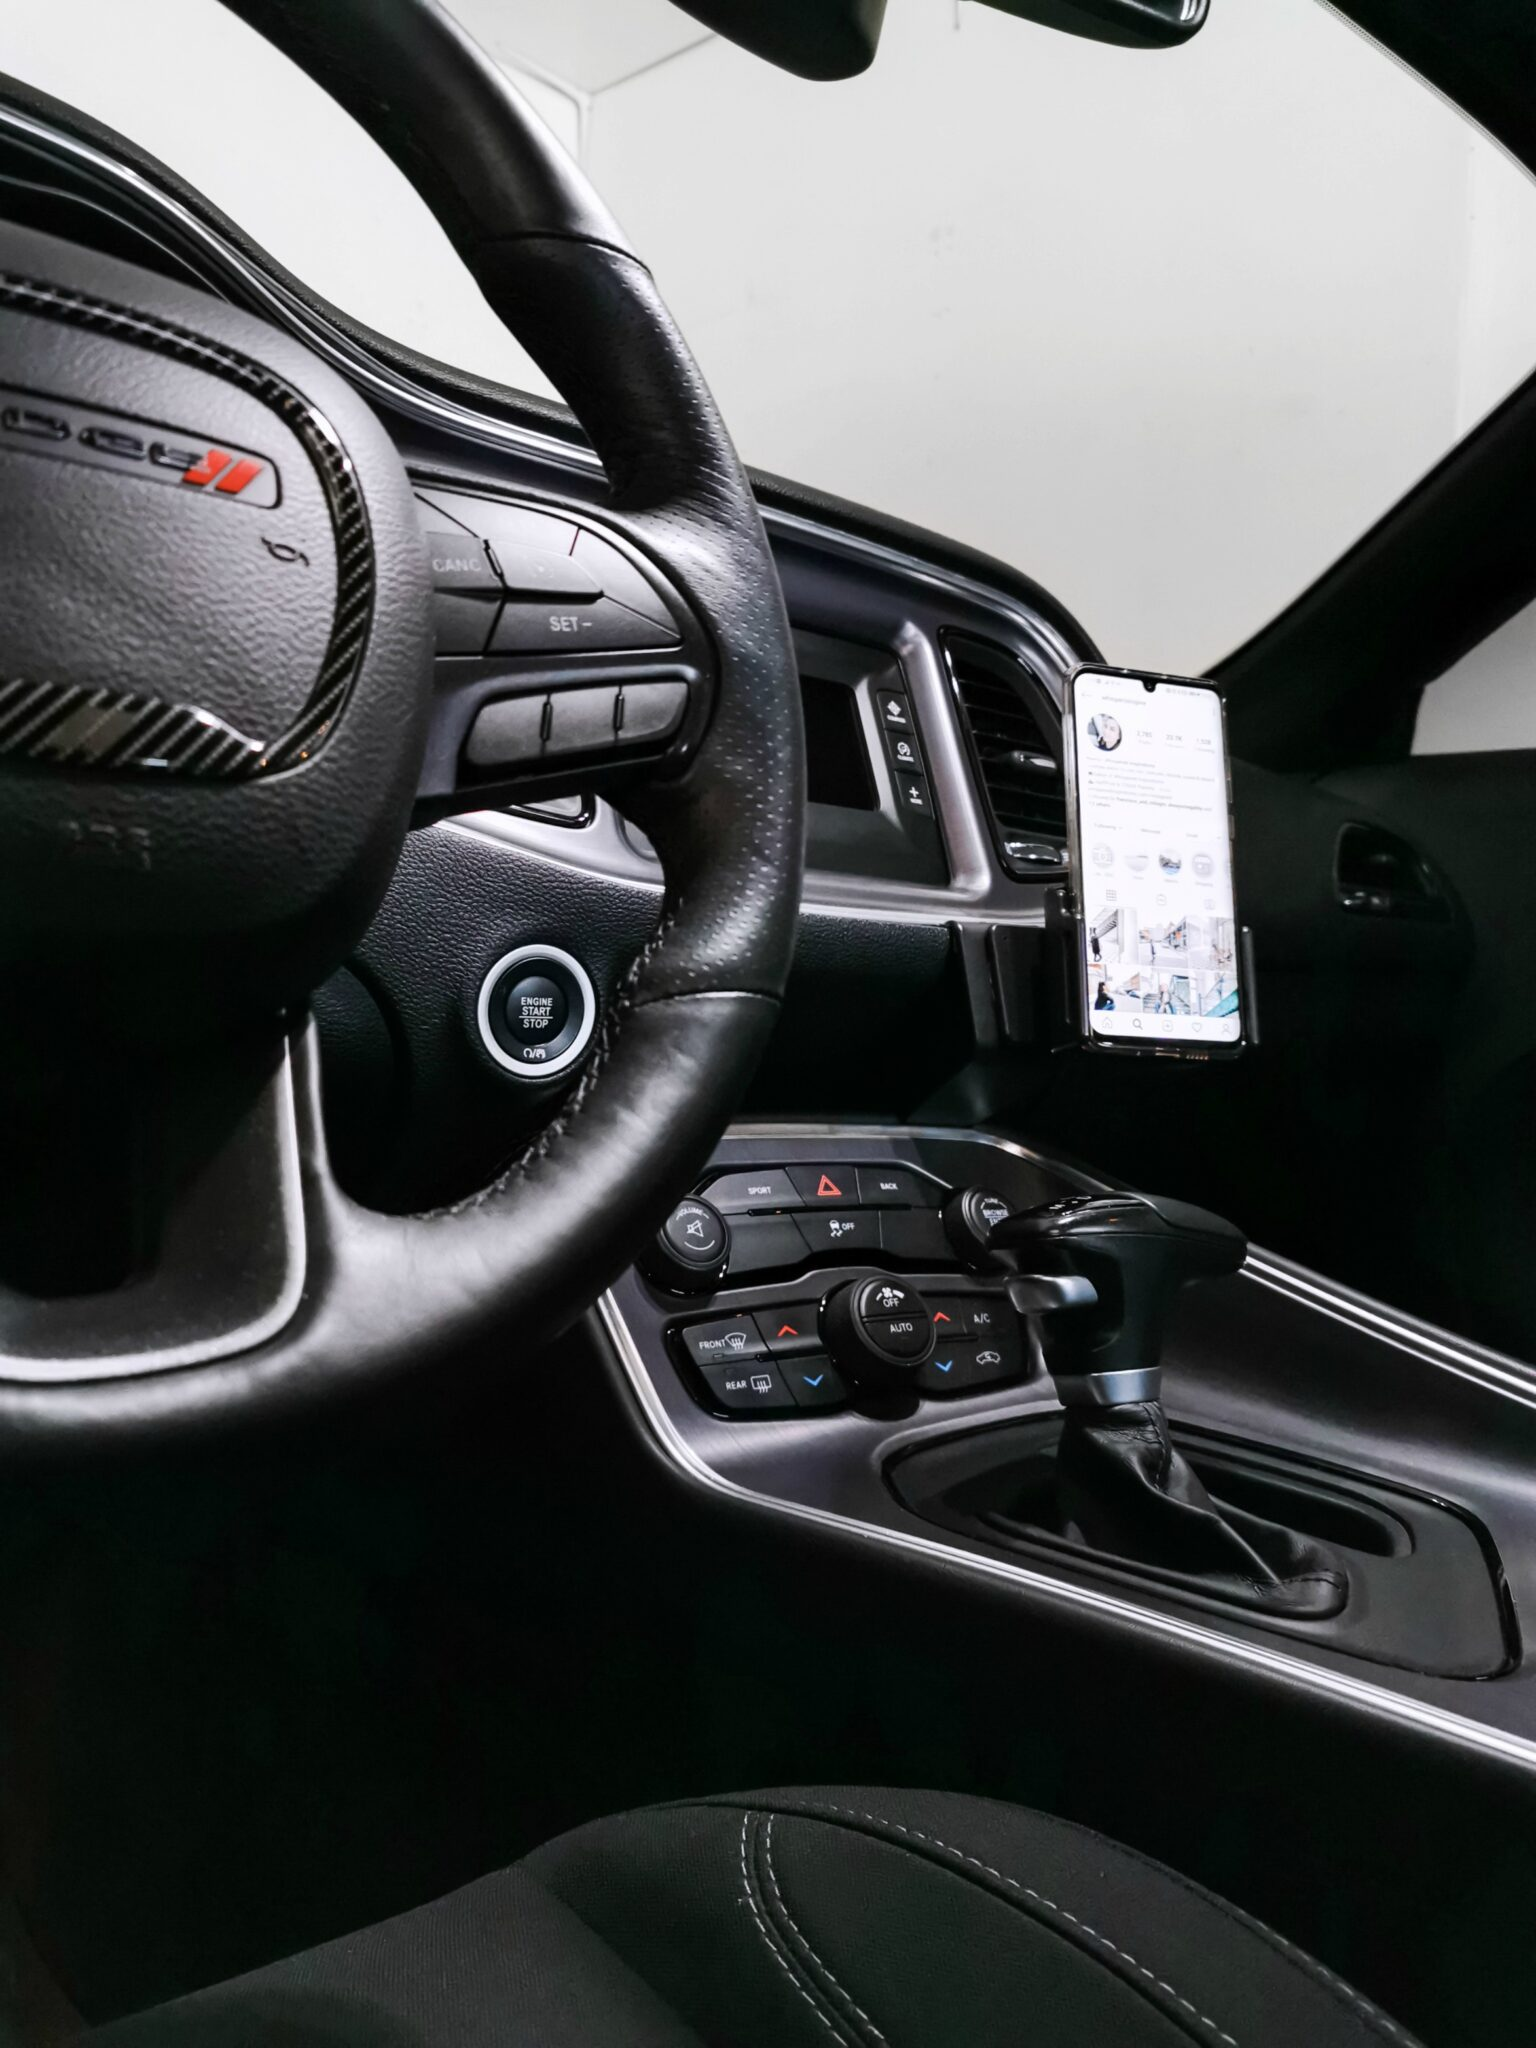 The steering wheel of a 2016 Dodge Challenger. A ProClip adjustable phone holder and mount are shown. The Huawei is inside the holder.